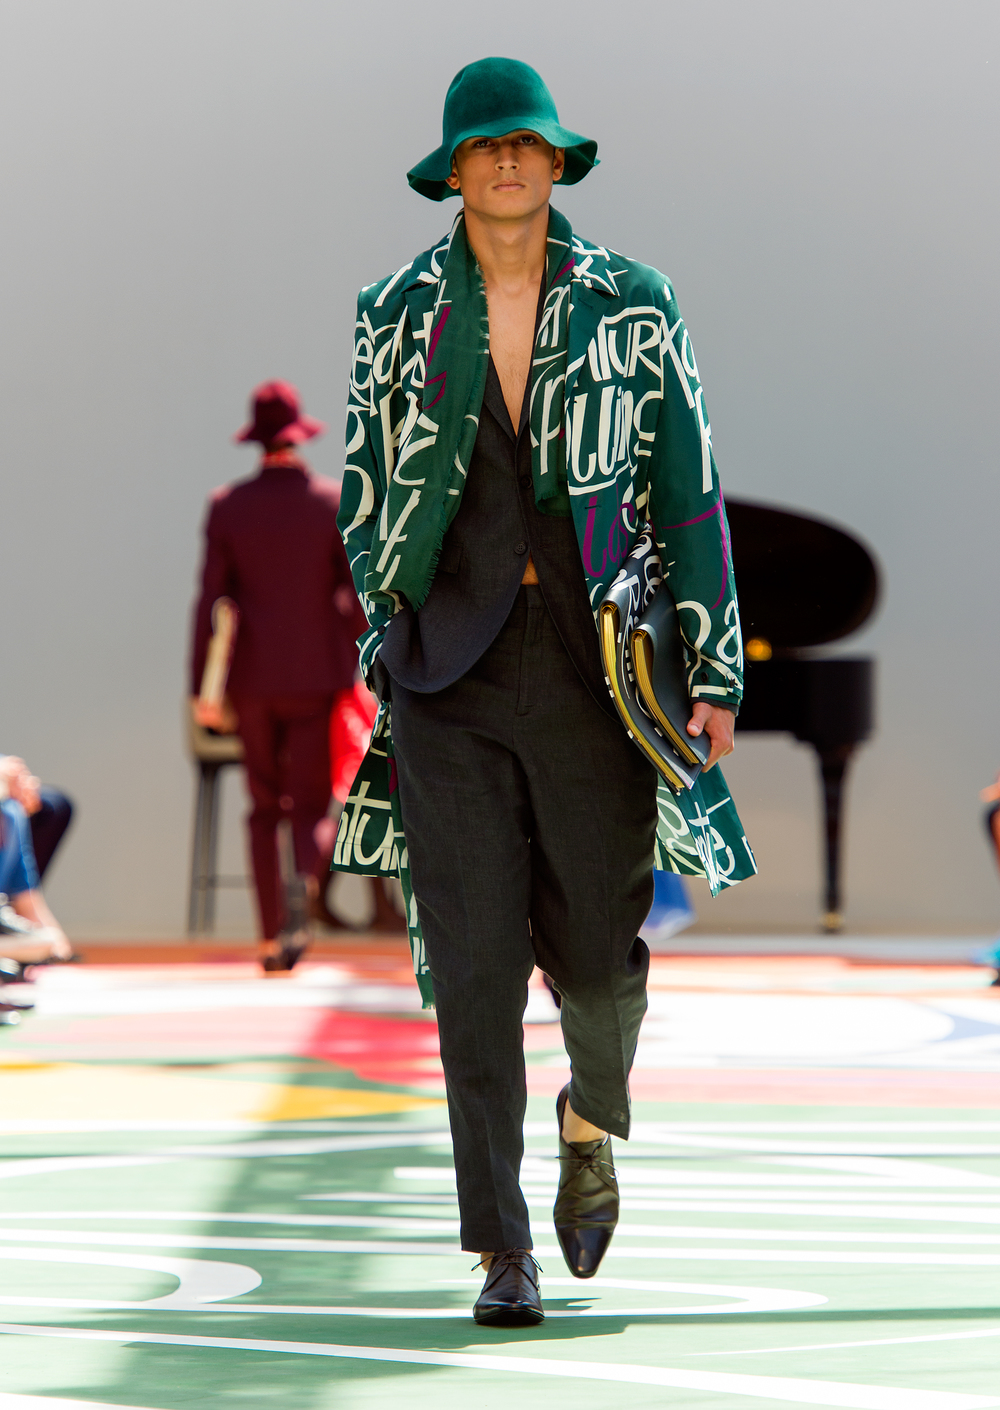 Burberry Prorsum Menswear Spring Summer 2015 Collection - Look 41.jpg